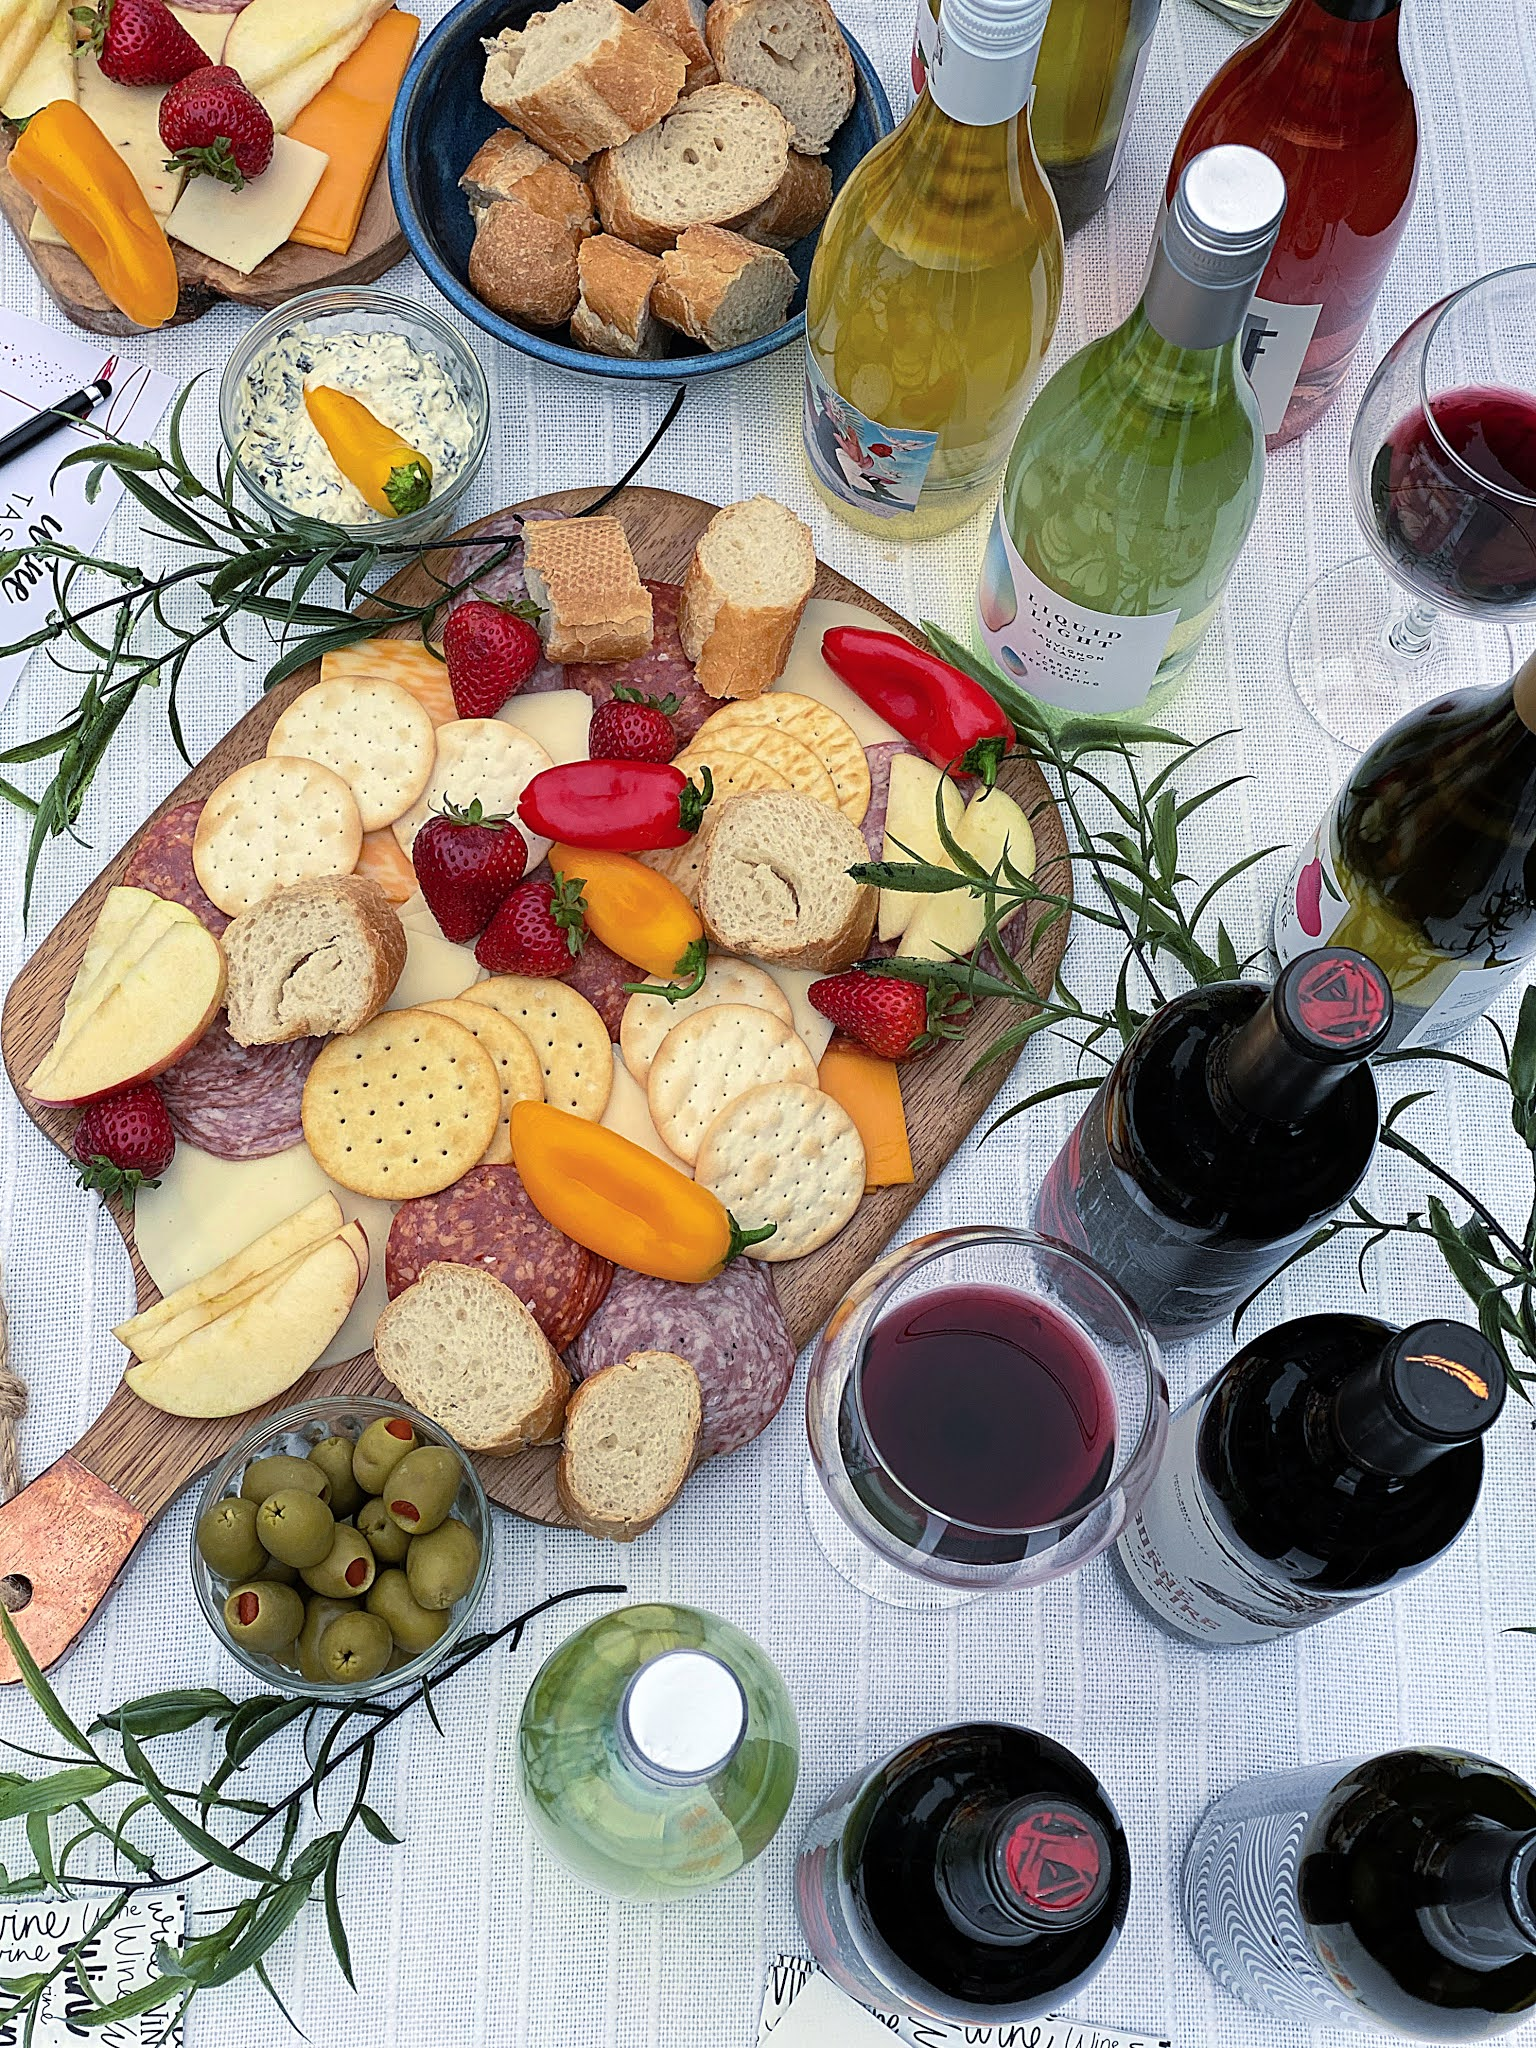 FOOD AND DRINK AT A WINE TASTING PARTY